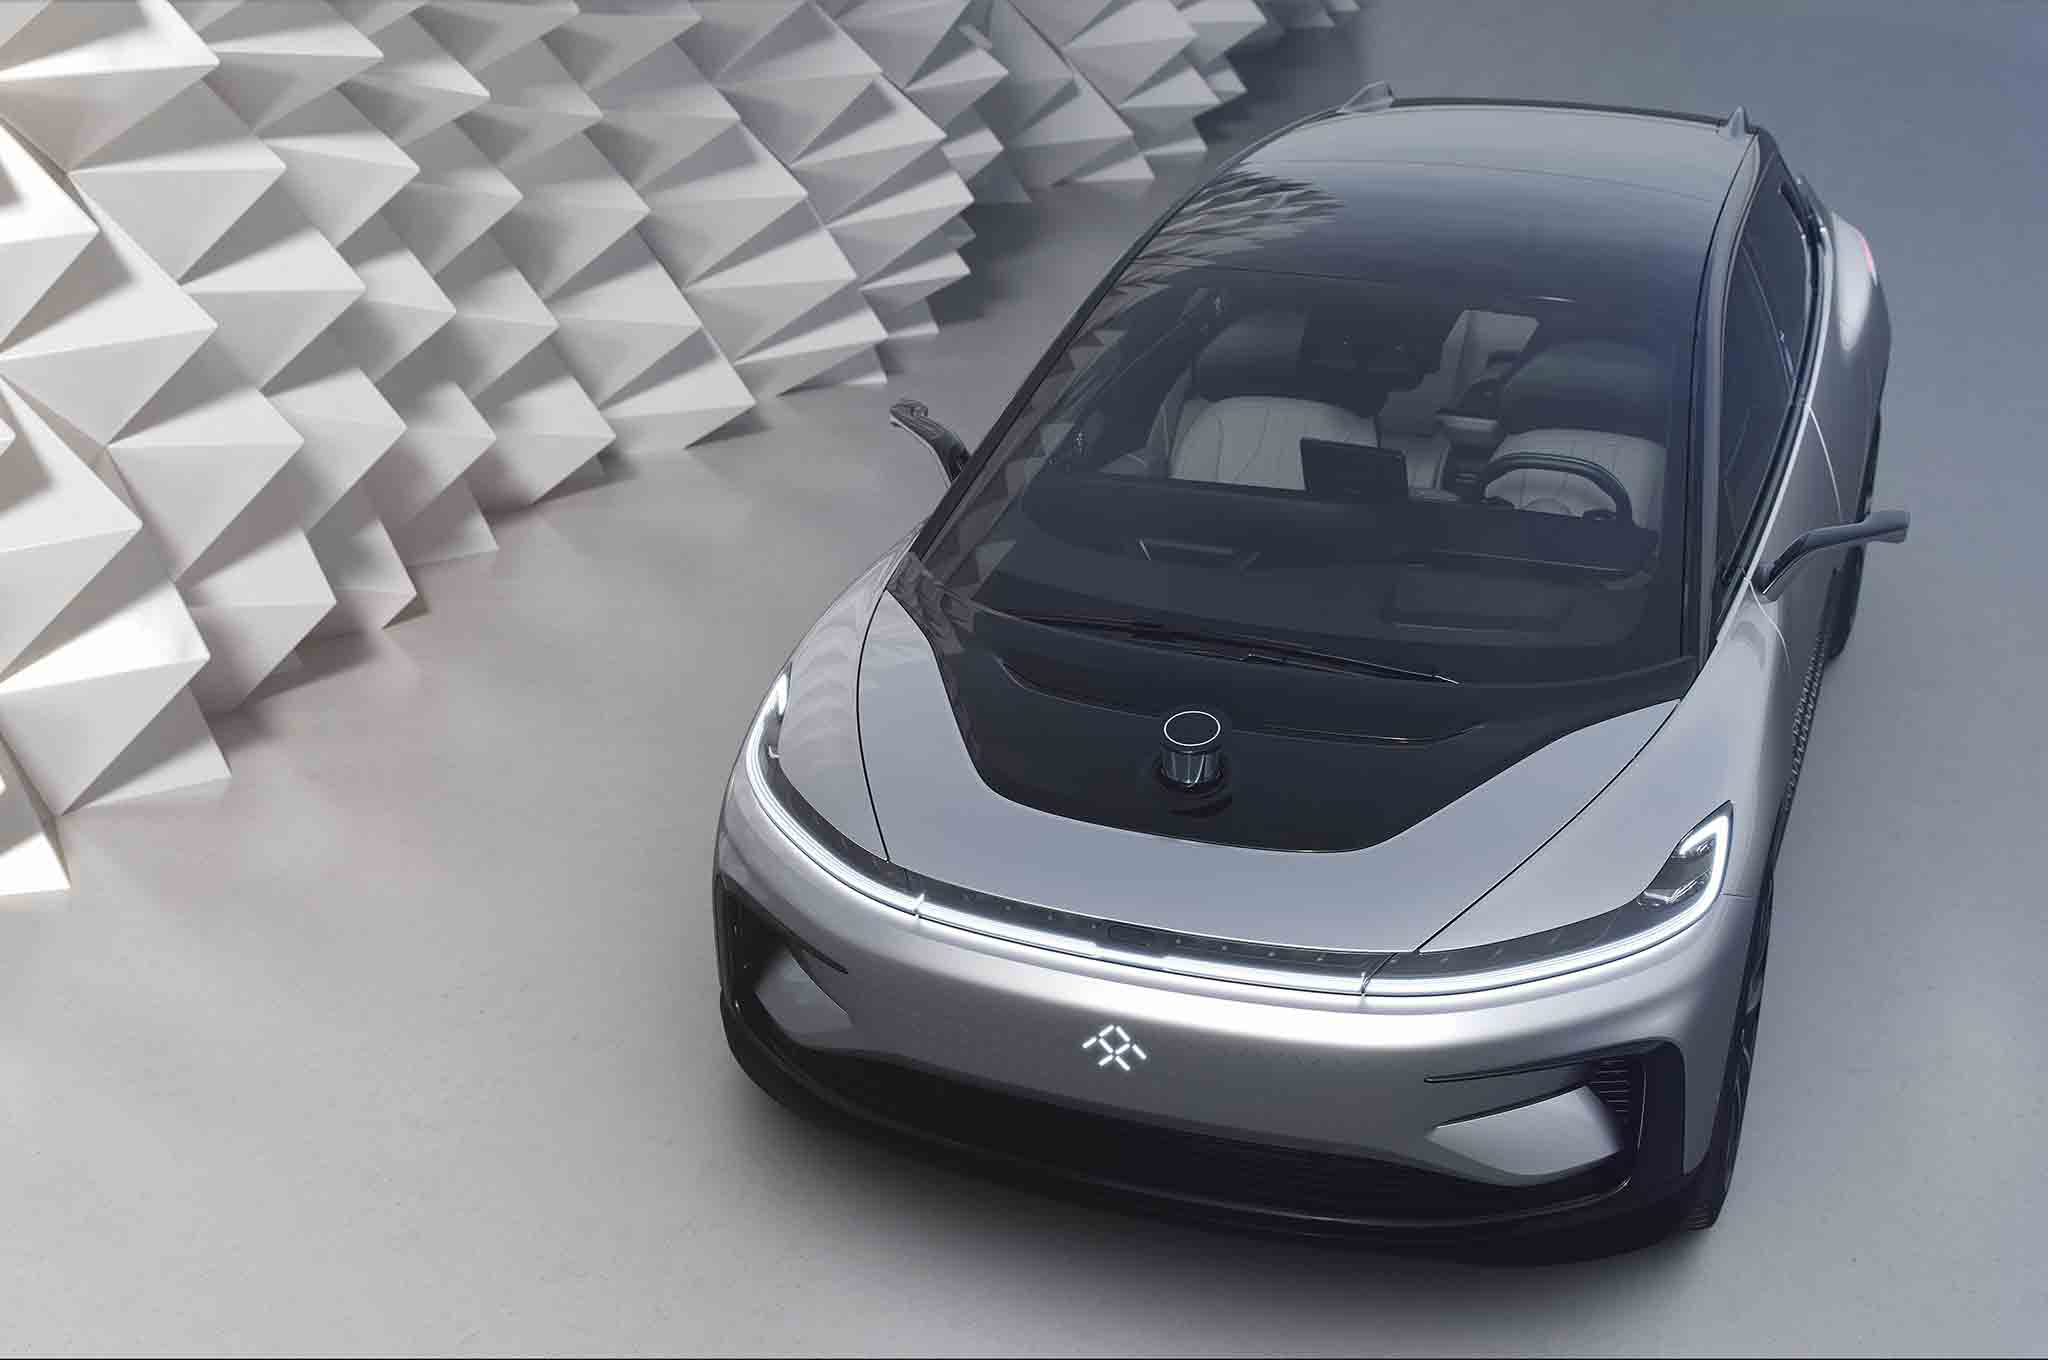 Faraday Future FF 91 Top View 04